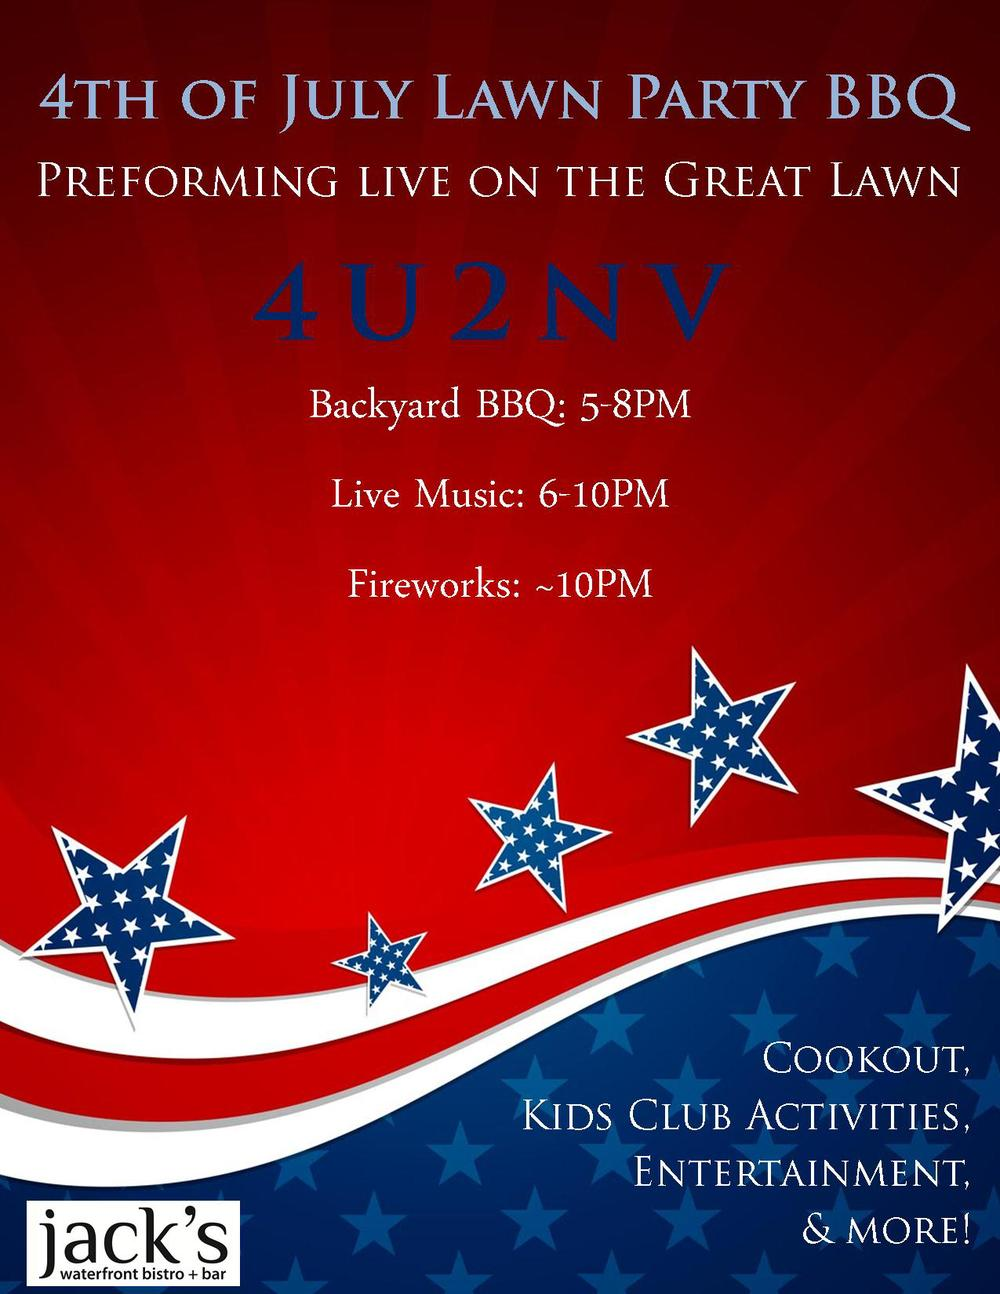 July 4, 2015 - 6pm to Fireworks Jack's Lawn